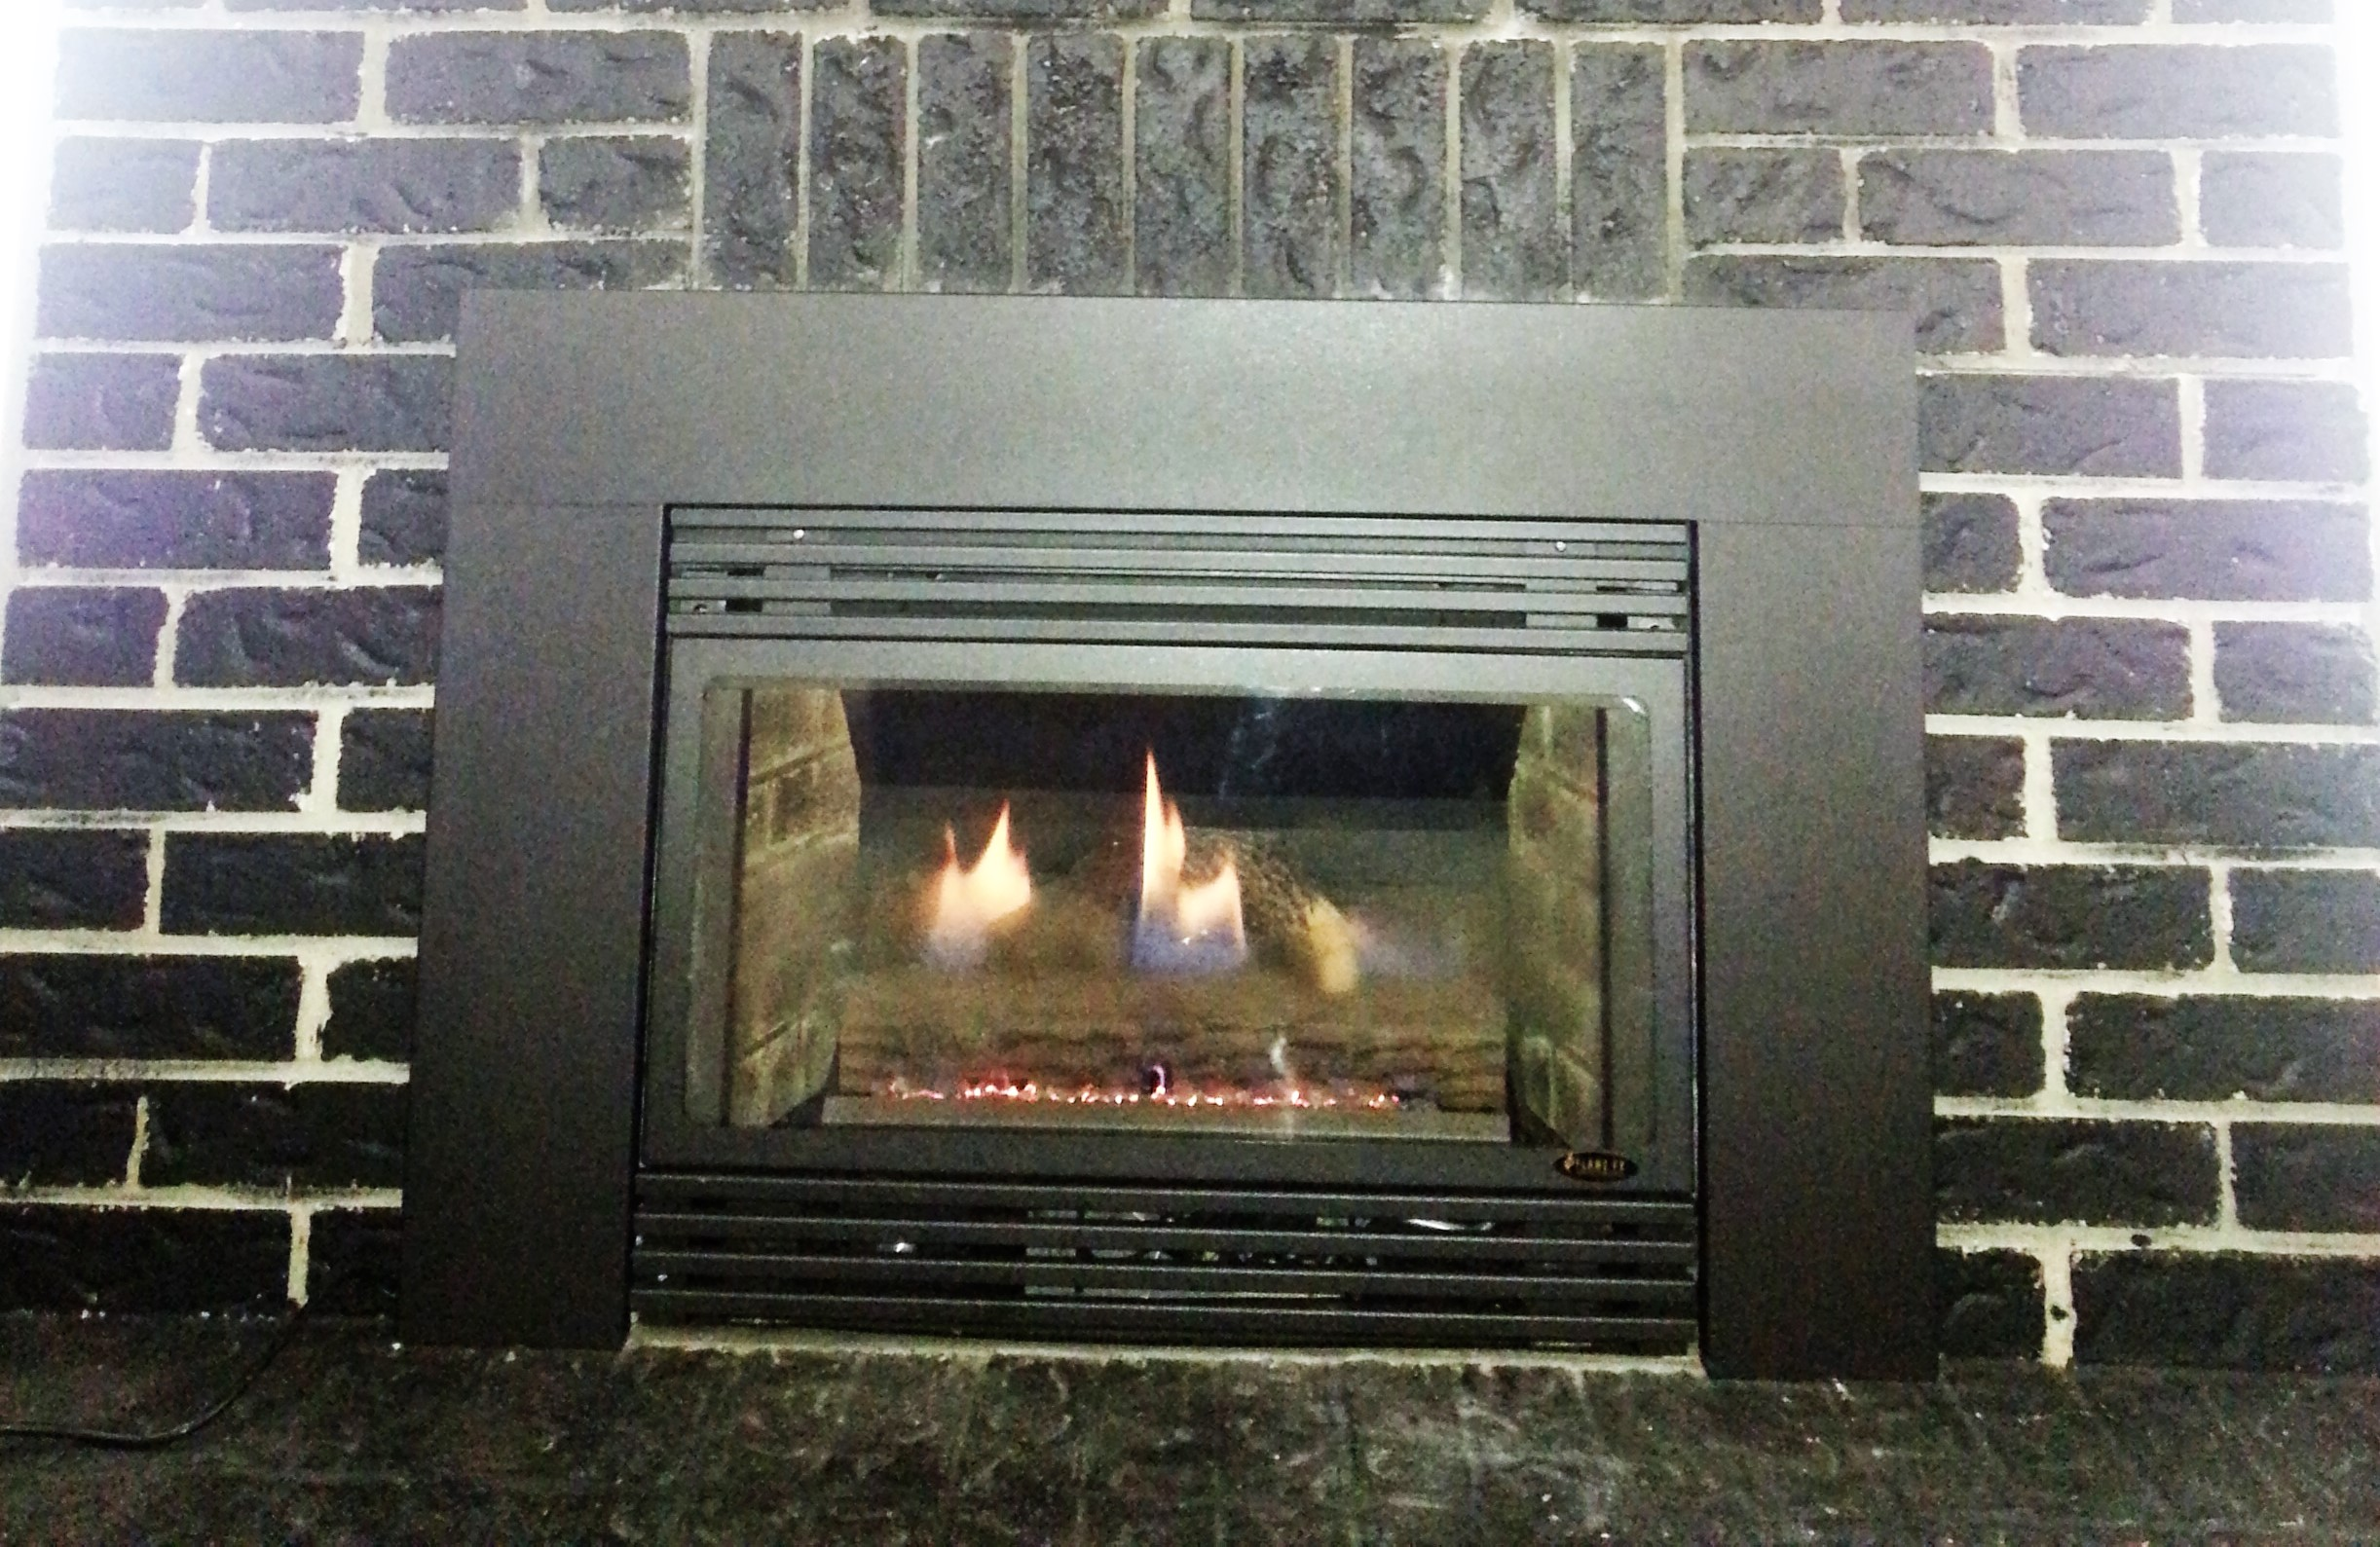 burning your wood heat blogs fireplace solar identify amp and this blog blower stove stoves brochure other inserts earth brands page